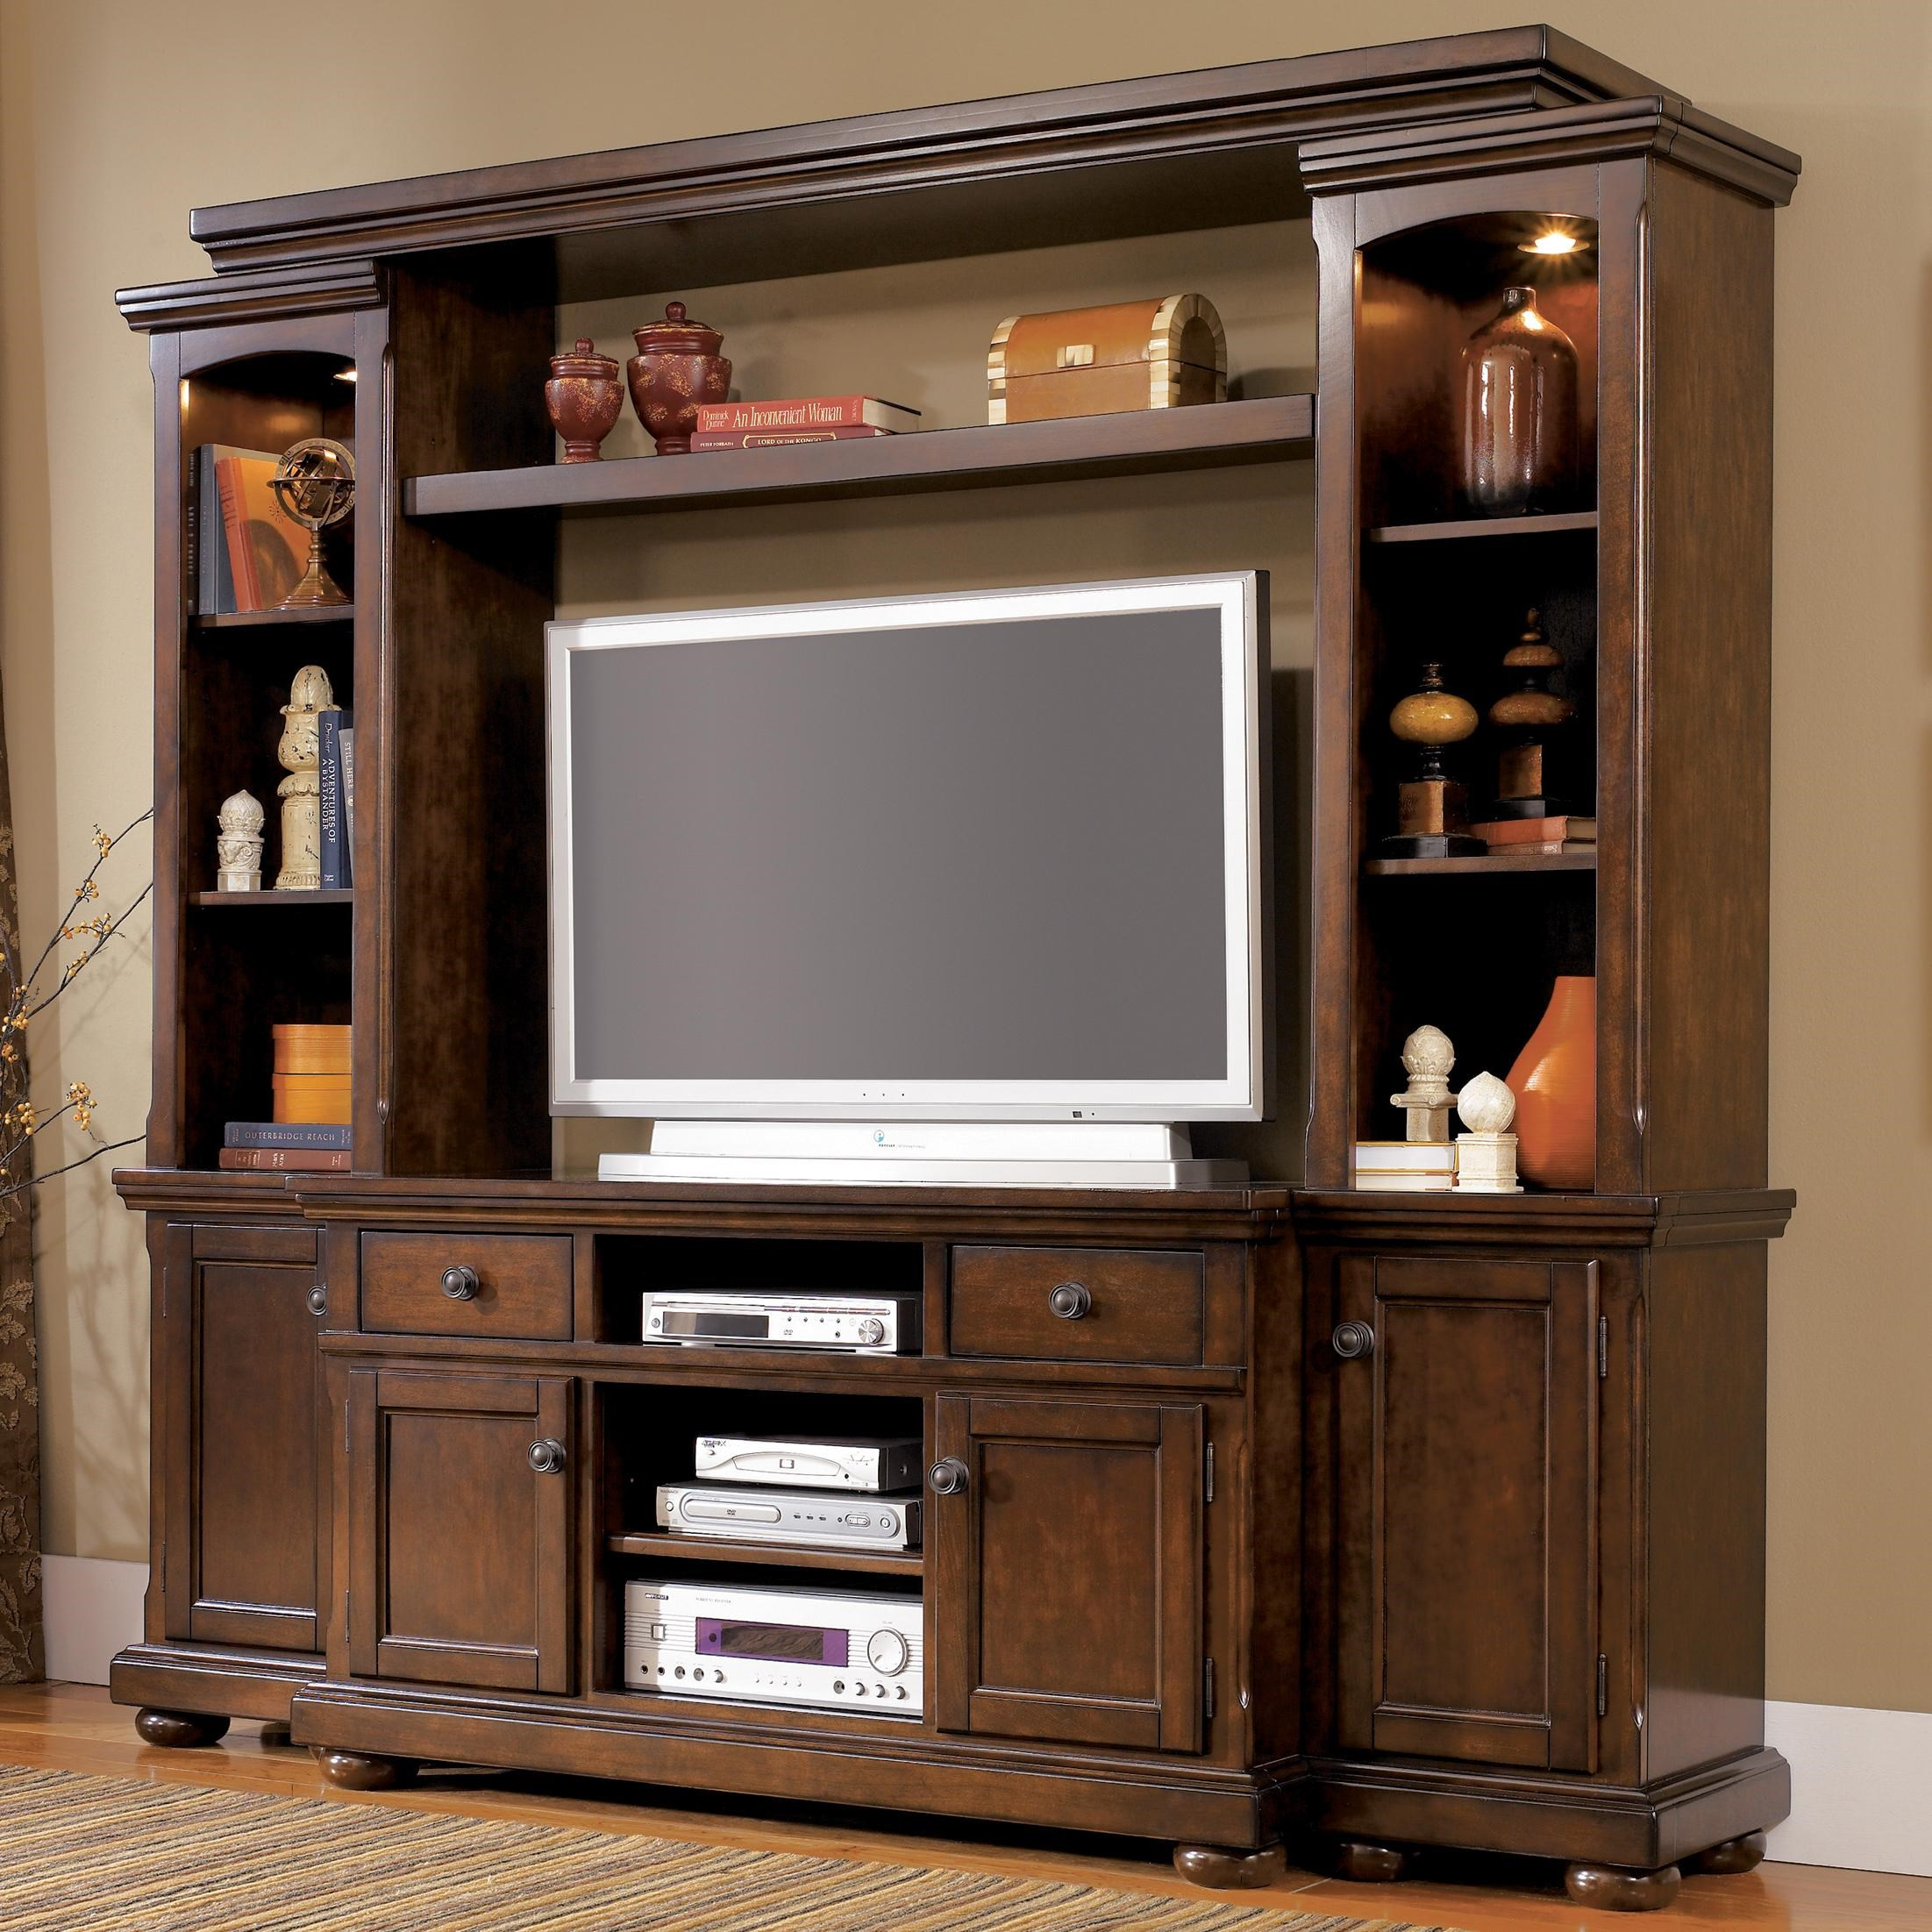 Ashley Furniture Porter Entertainment Wall Unit With TV Stand, Piers,  Bridge, And Shelf